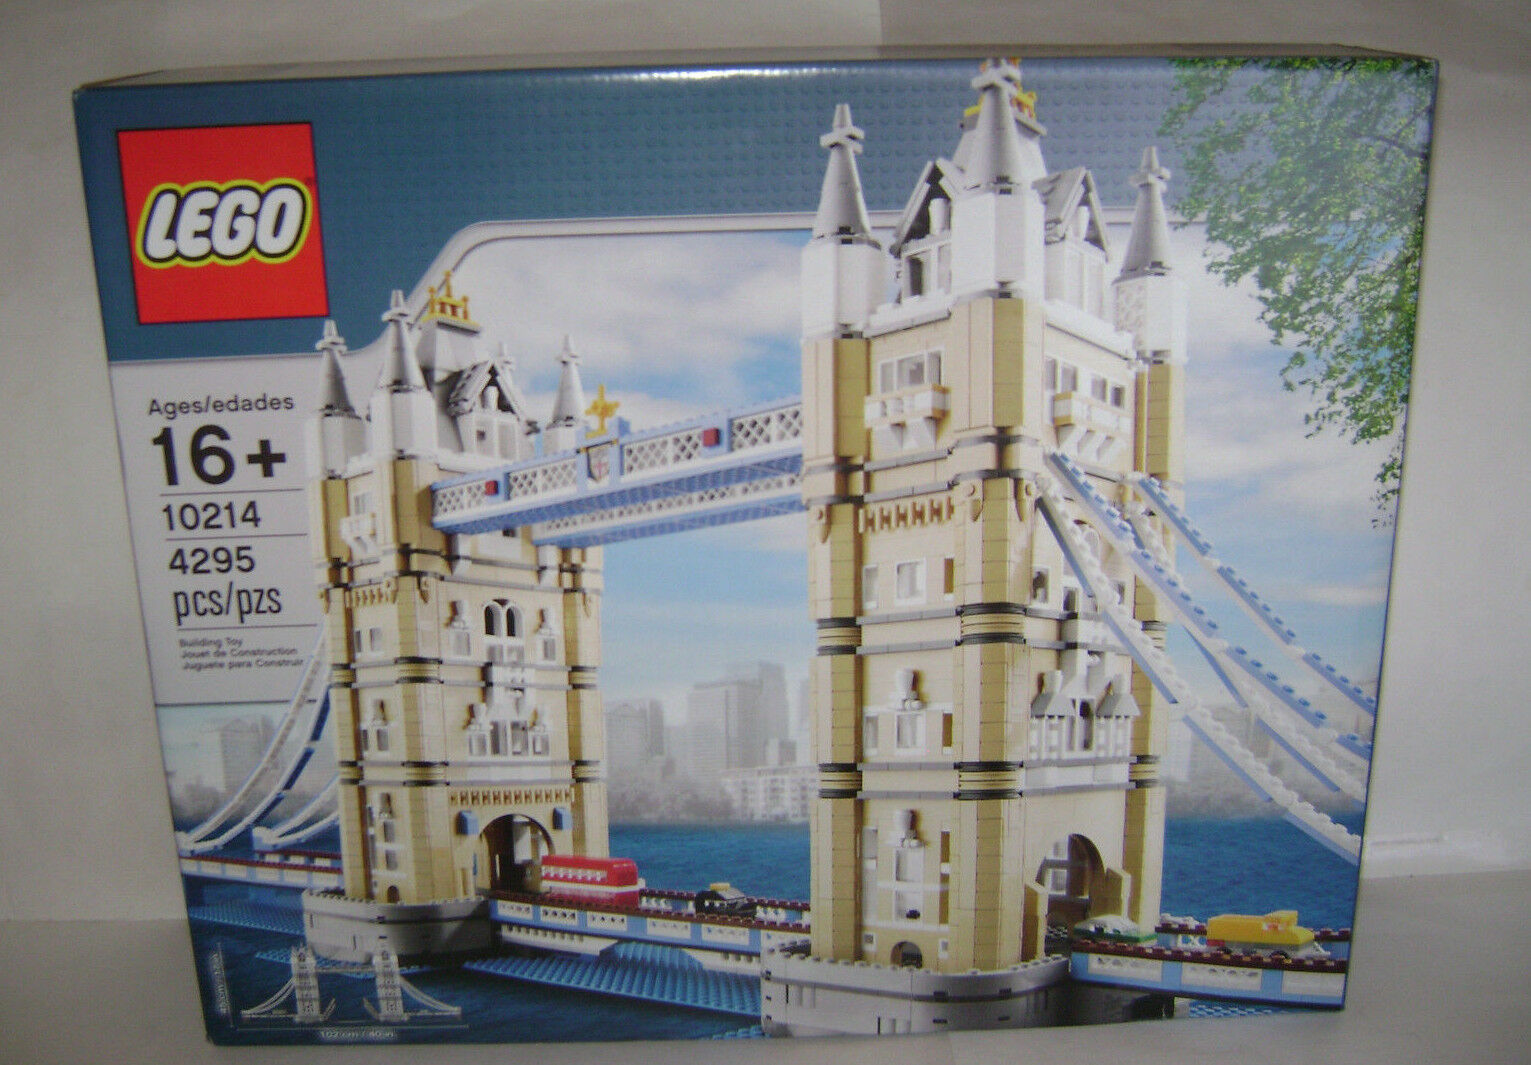 NEW 10214 Lego CREATOR Tower Bridge London Building Toy SEALED BOX RETIrosso A